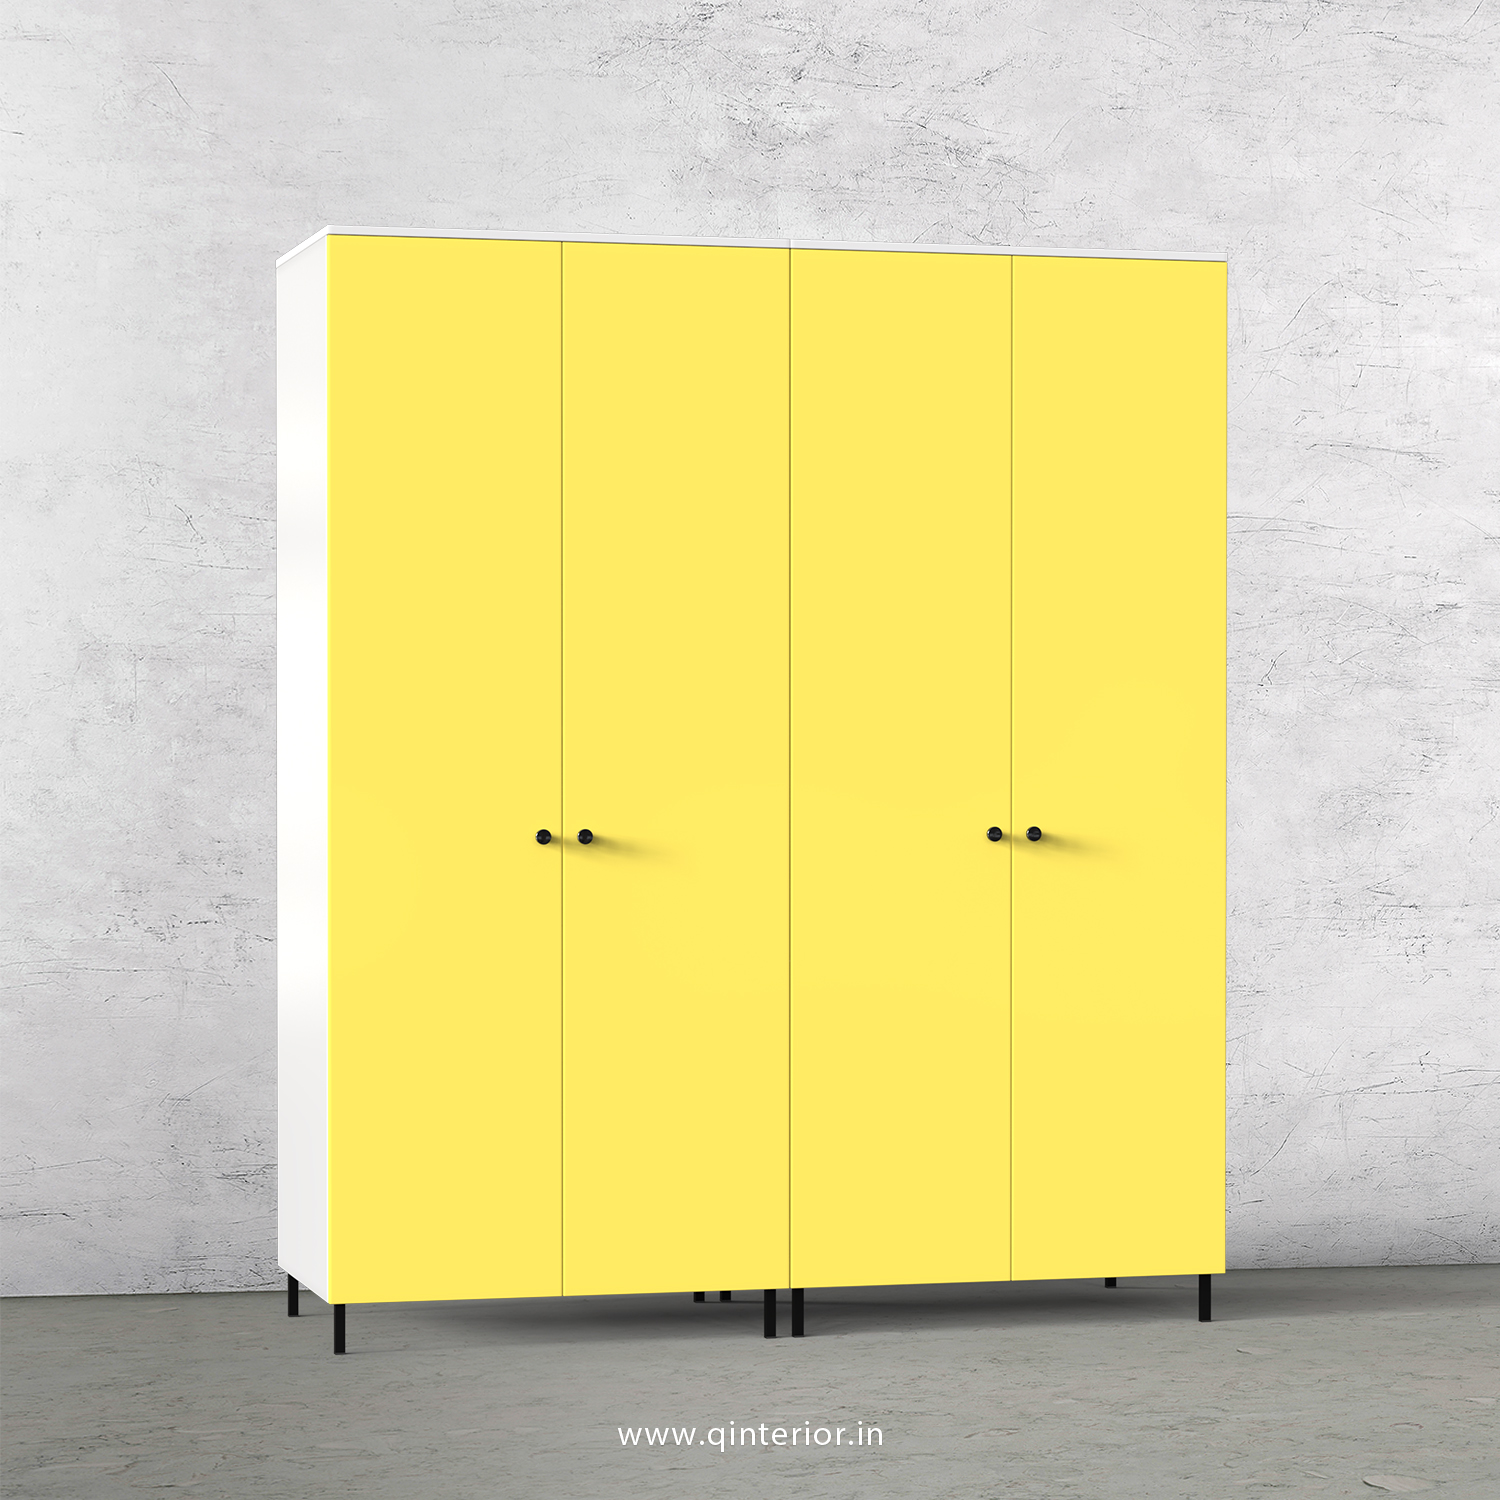 Lambent 4 Door Wardrobe in White and Marigold Finish – FWRD001 C89